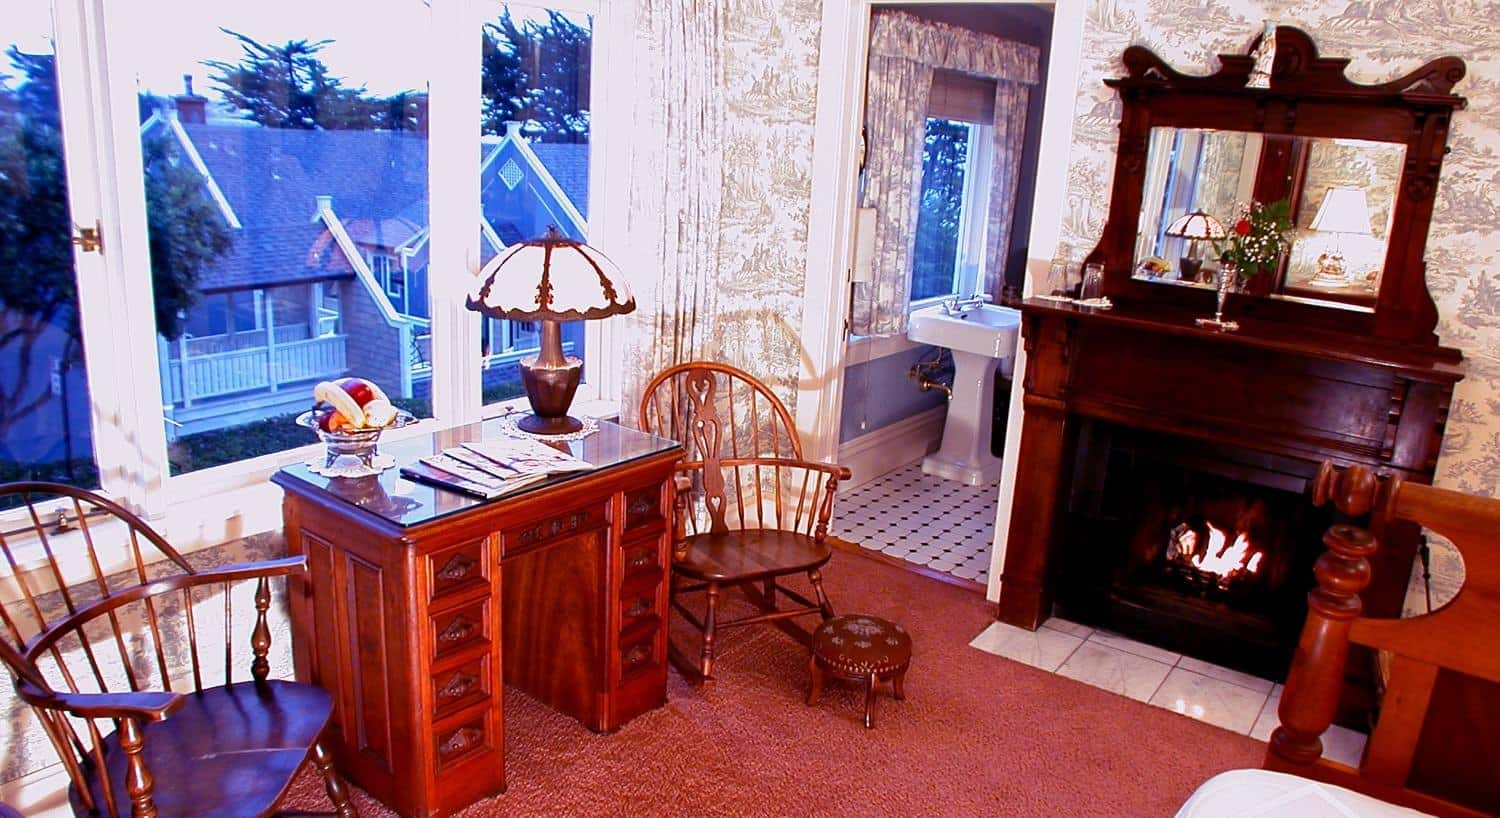 American guest room with triple window, carpeting, fireplace with warm fire, desk, chairs and attached bathroom